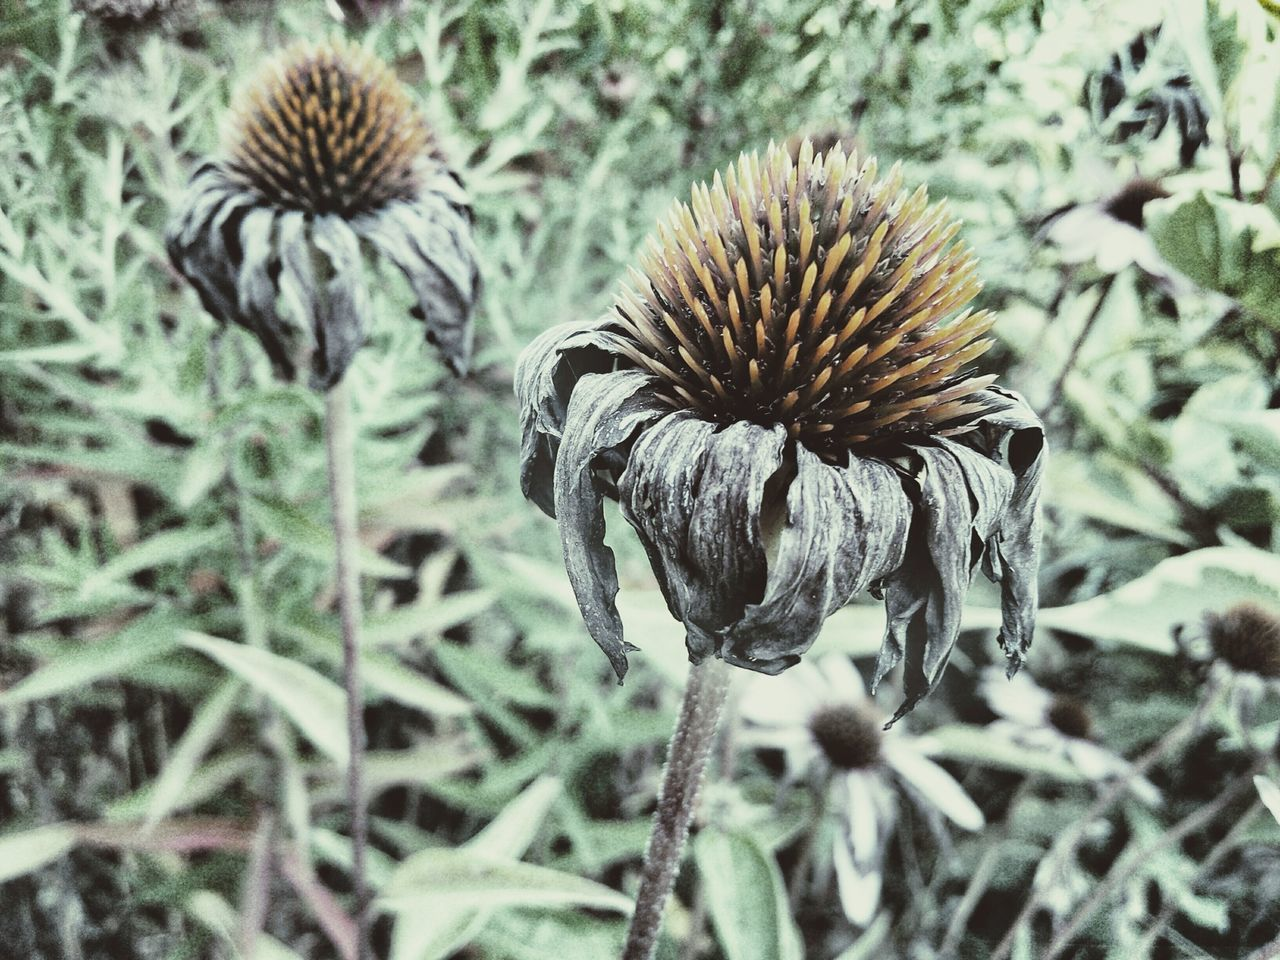 Echinacea Purpurea Echinacea Dry Flowers Focus On Foreground Close-up Plant Growth Dry Nature Fragility Flower Spiked Botany Outdoors Day Beauty In Nature Plant Life Growing In Bloom Thorn